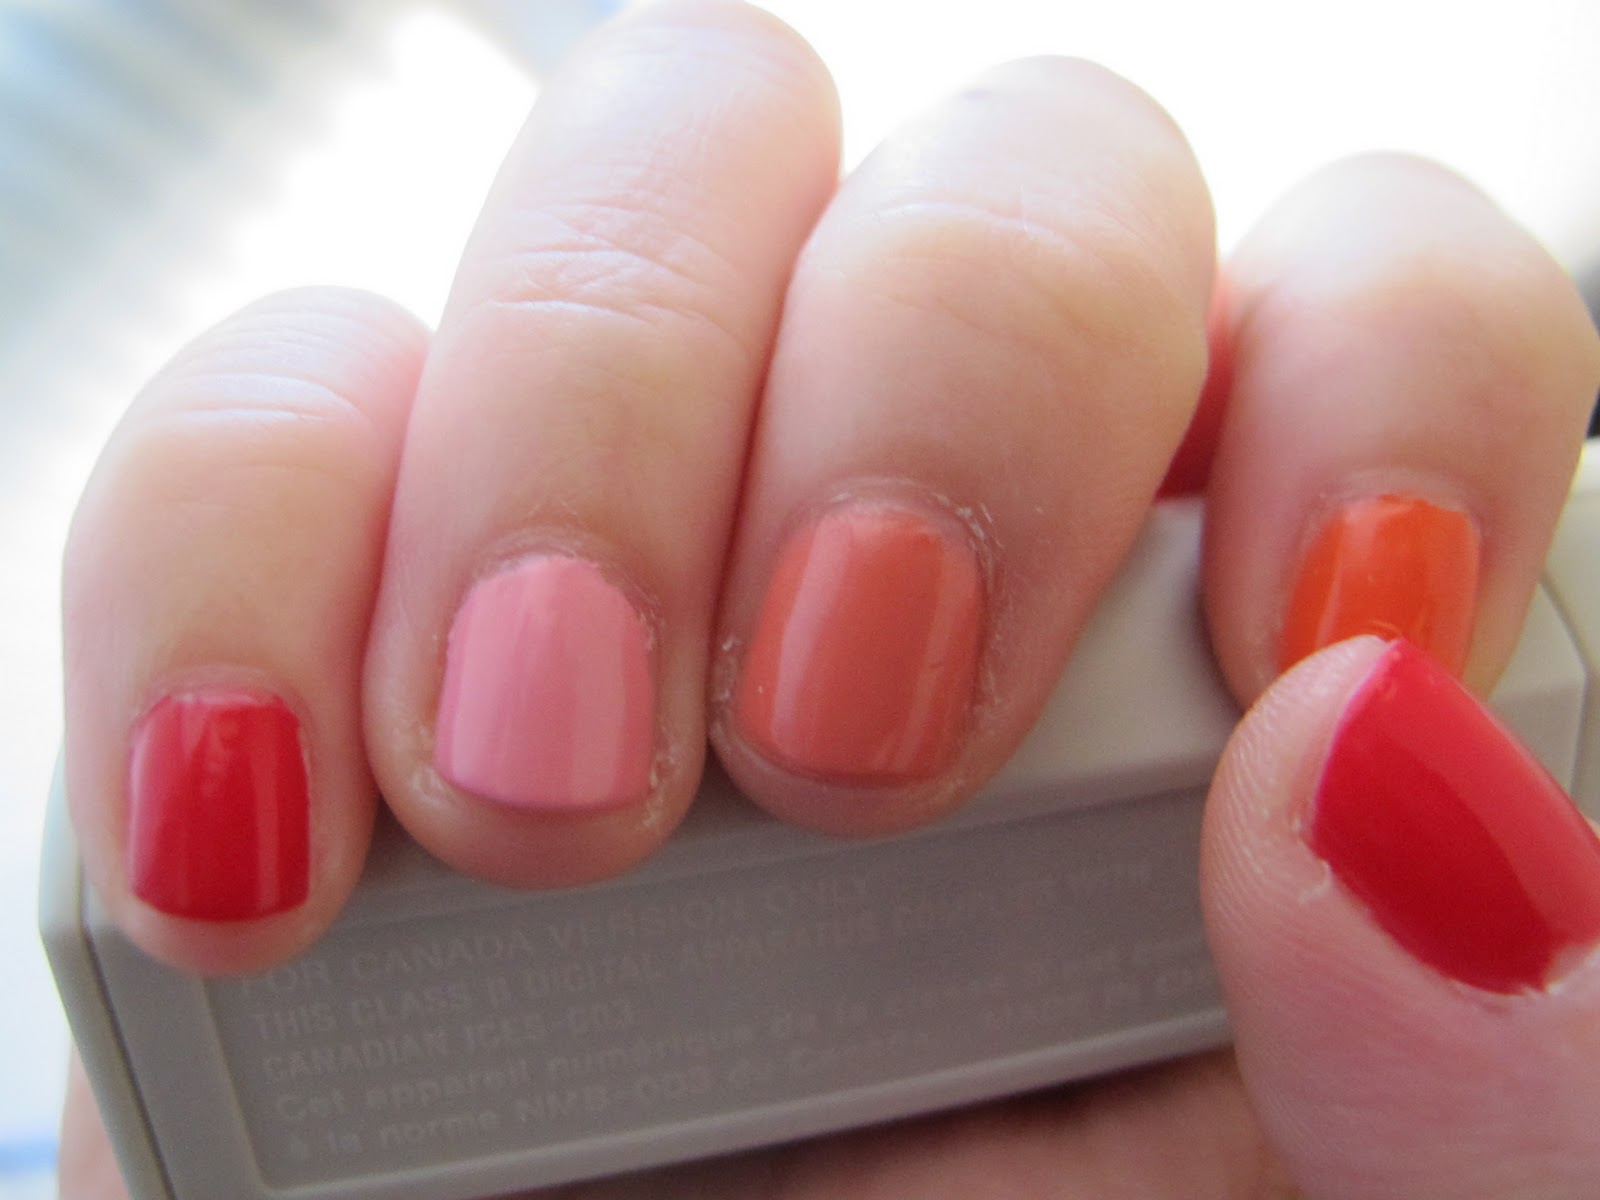 Revlon Fire and Ice Nail Polish and Lipstick Swatches - Free makeup ...